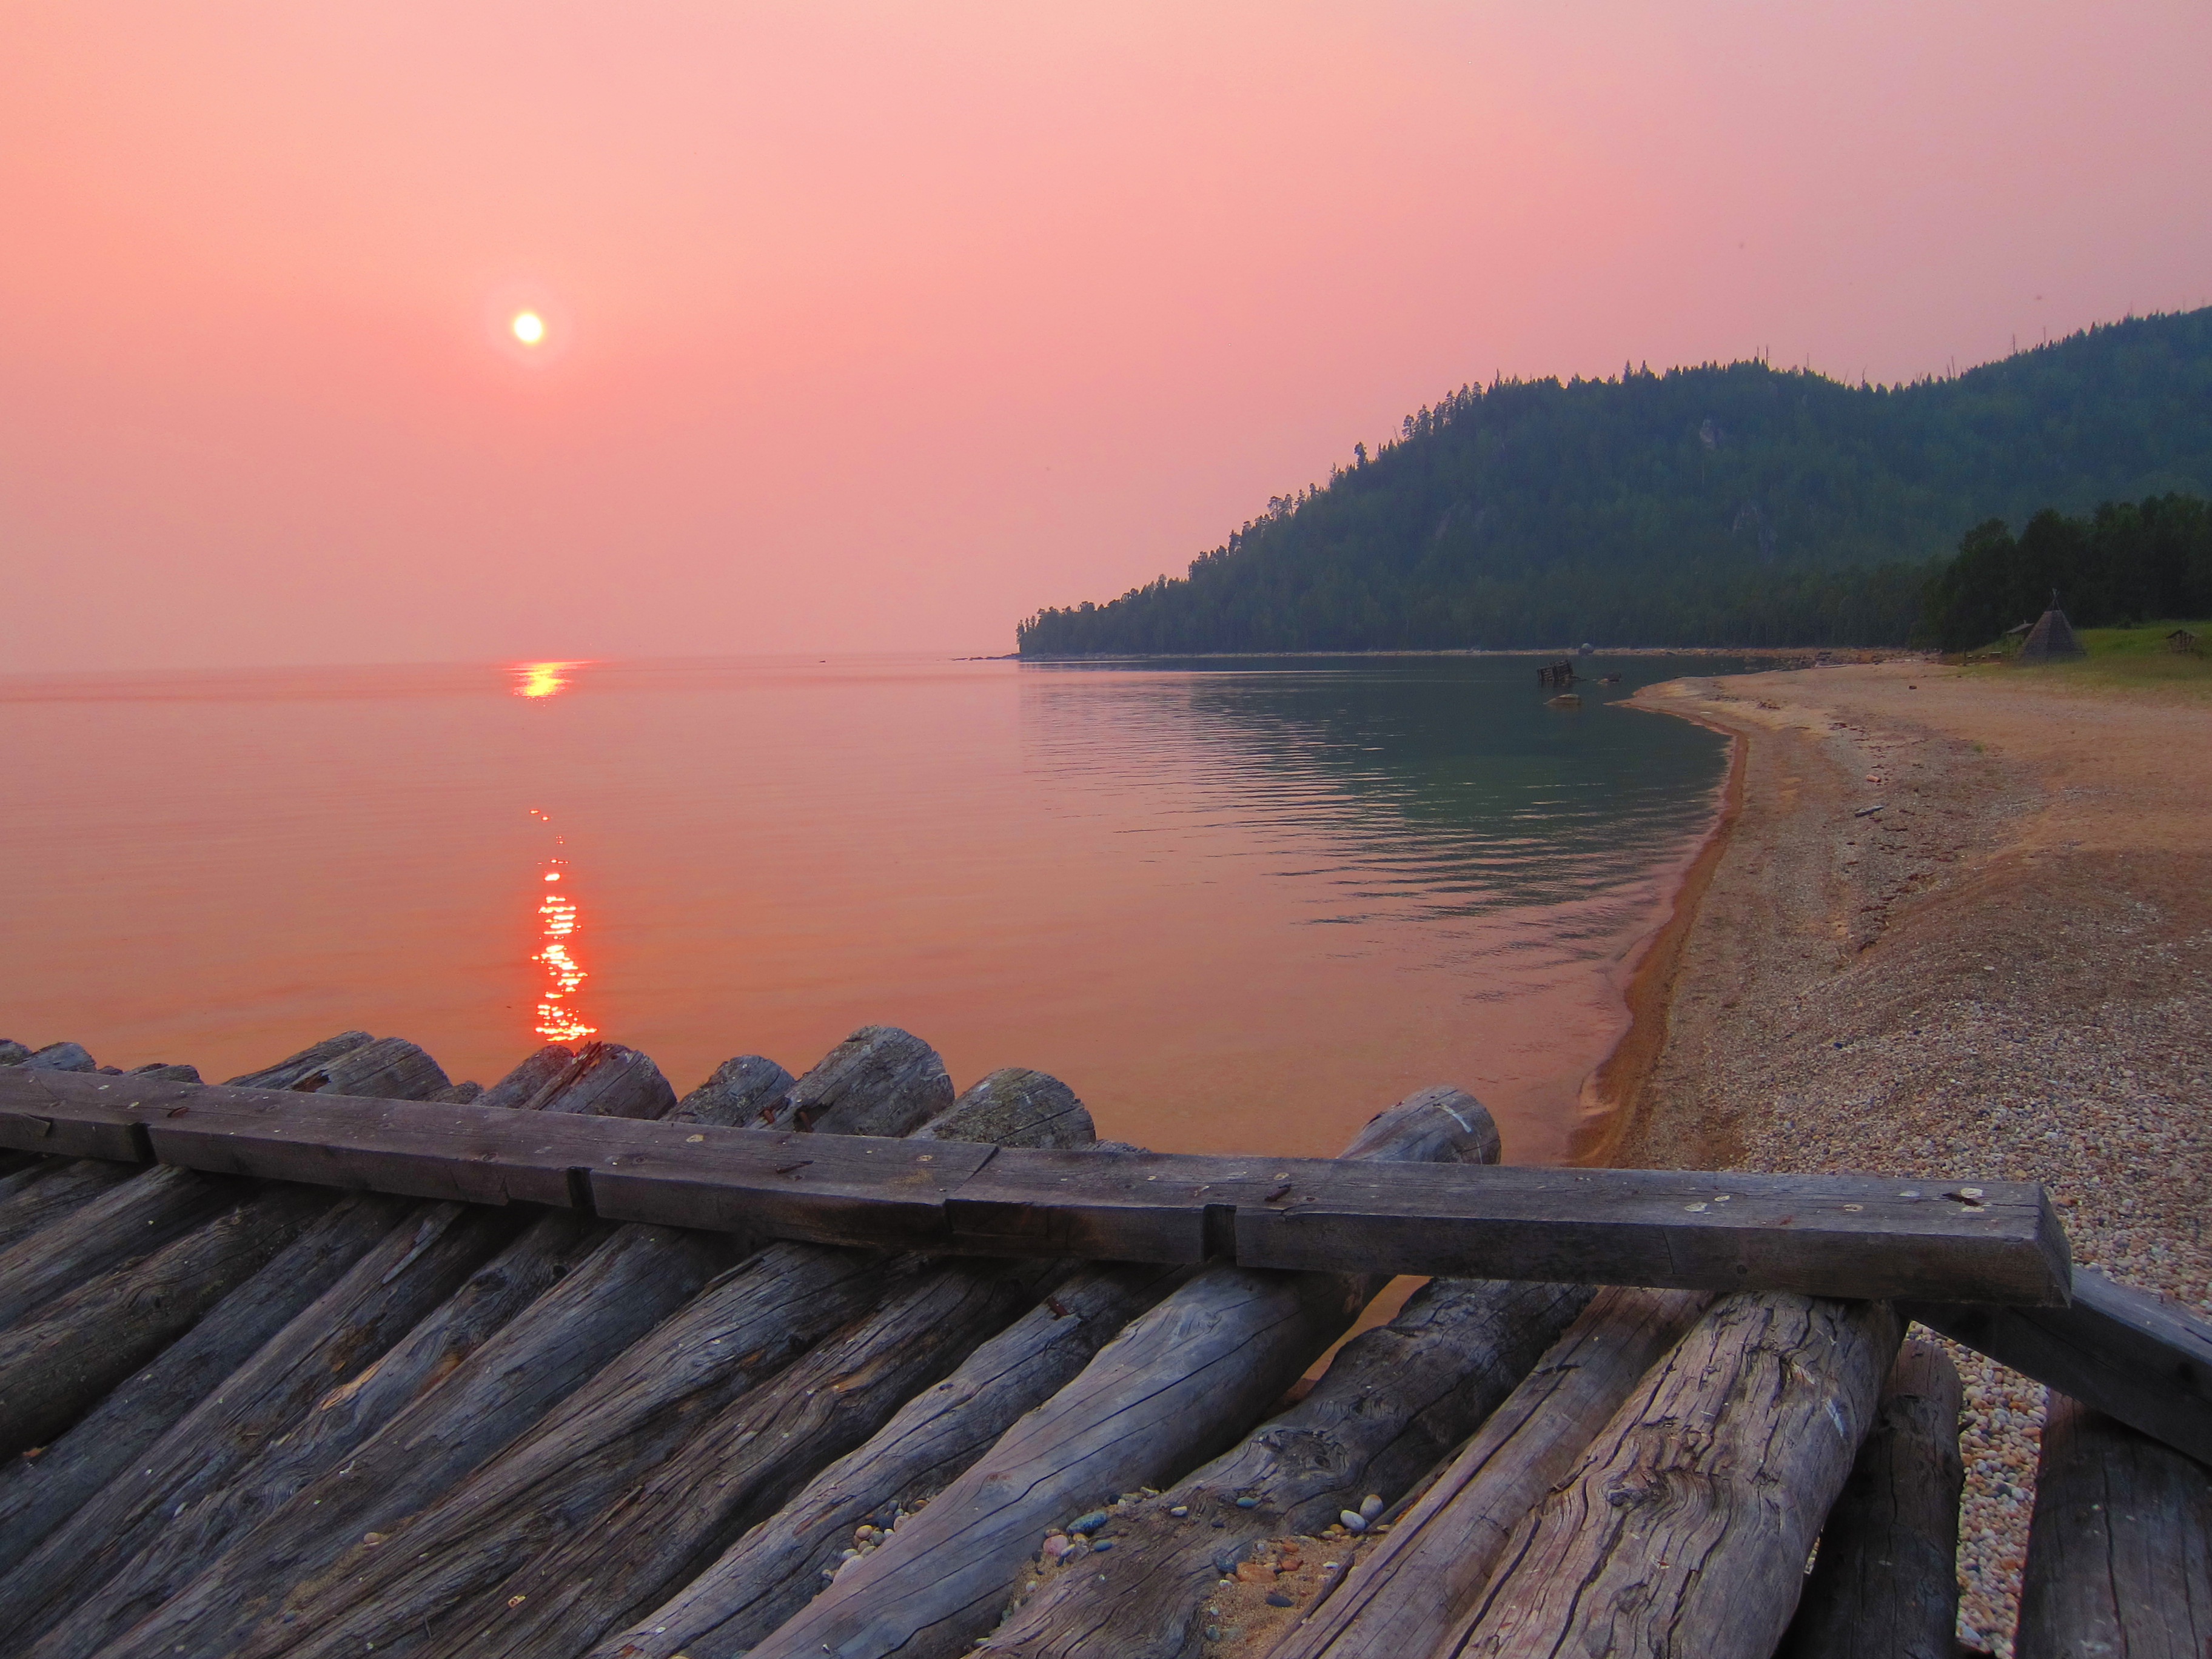 Image: An extraordinary sunset over Lake Baikal - but heightened by the ever present forest fires. Credit: Bryce Stewart